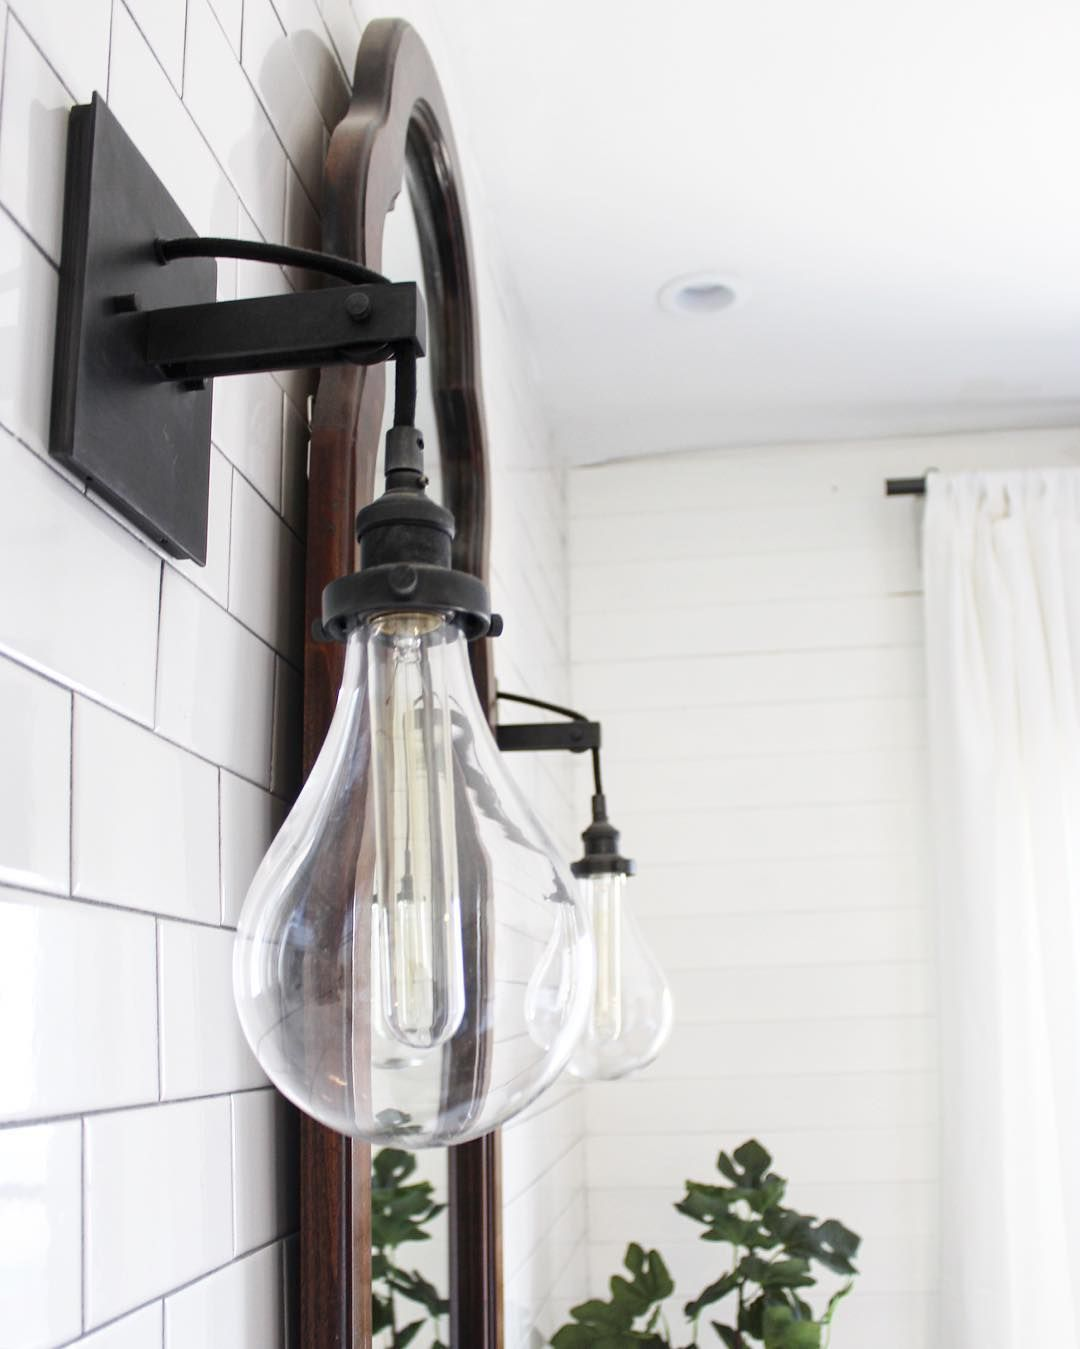 large fixtures pipe light size lighting bathroom on winning ideas of ceiling archived industrial cat